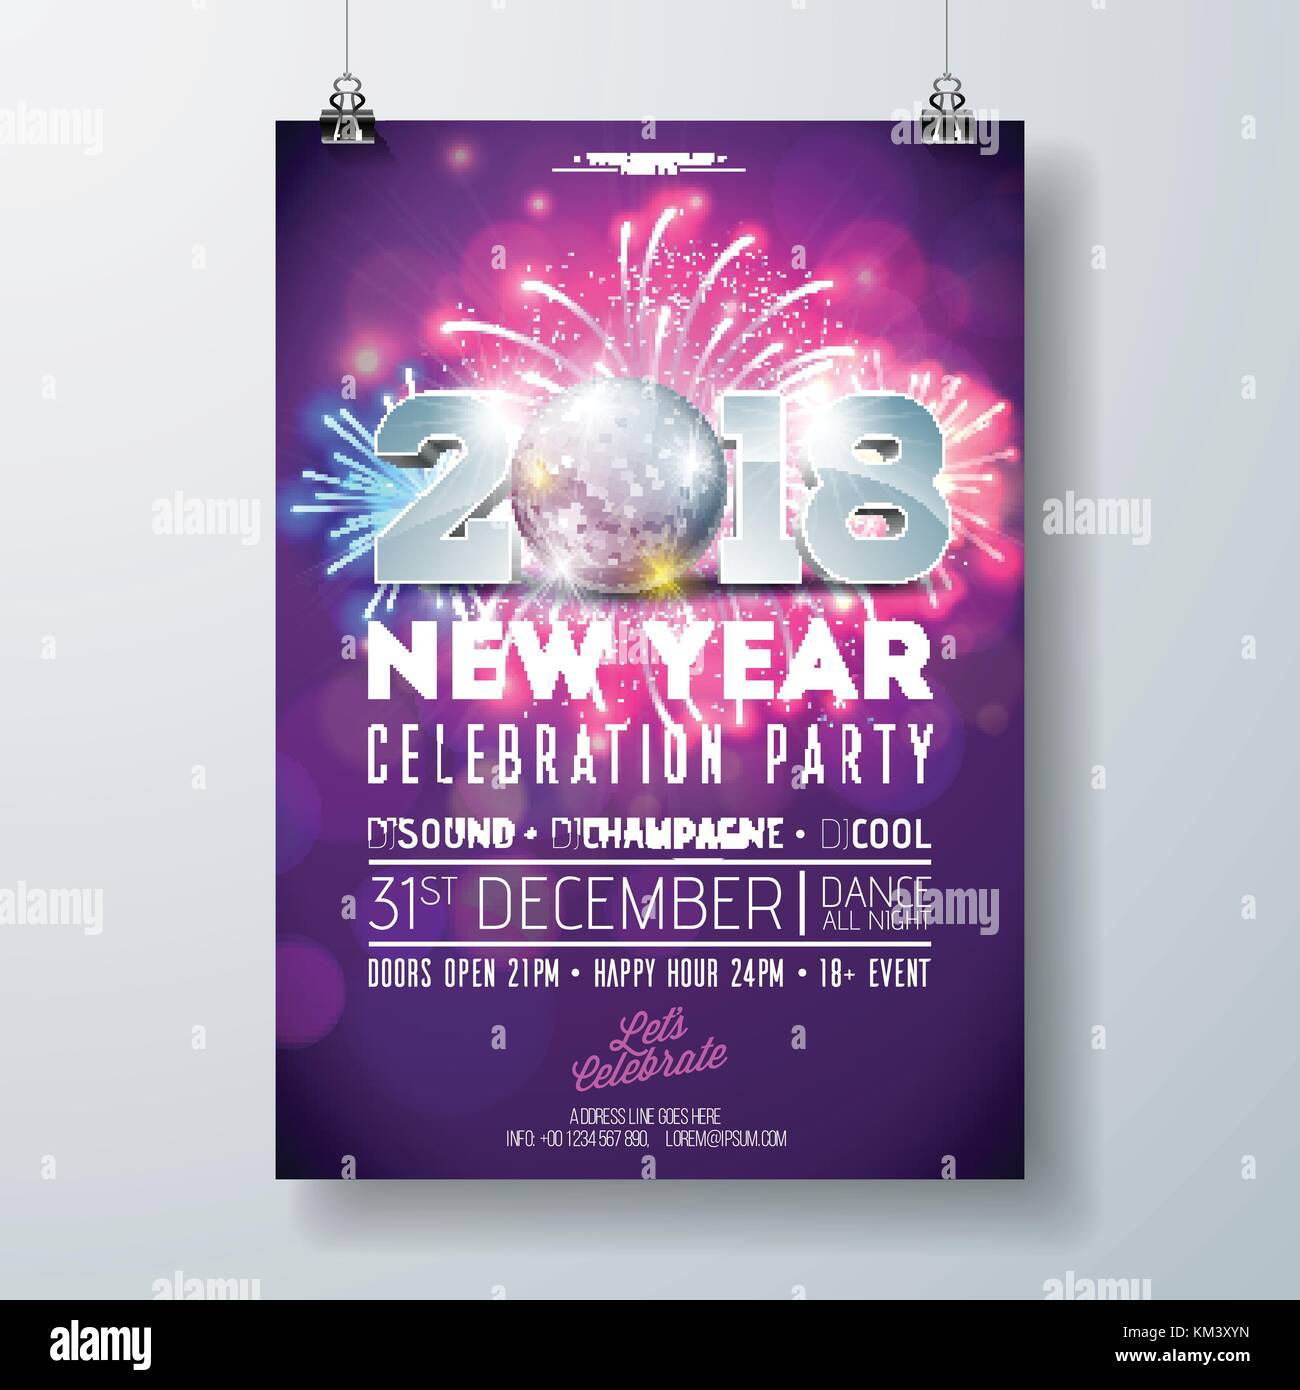 New Year Party Celebration Poster Template Illustration with 3d 2018     New Year Party Celebration Poster Template Illustration with 3d 2018  Number  Disco Ball and Firework on Shiny Colorful Background